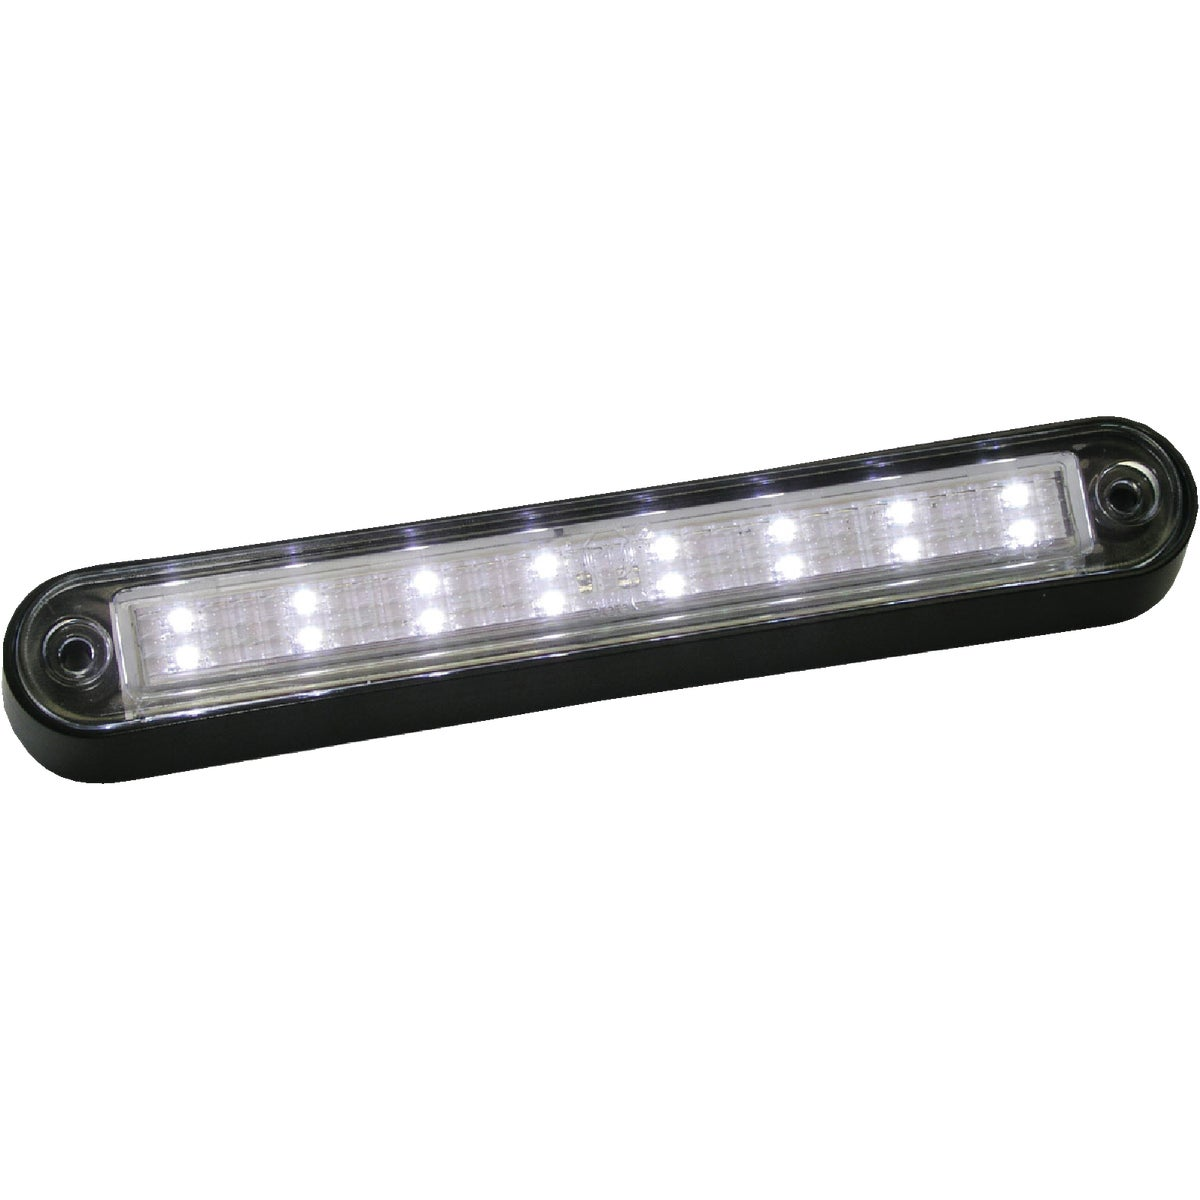 LED INT/EXT AISLE LIGHT - V388C by Peterson Mfg Co